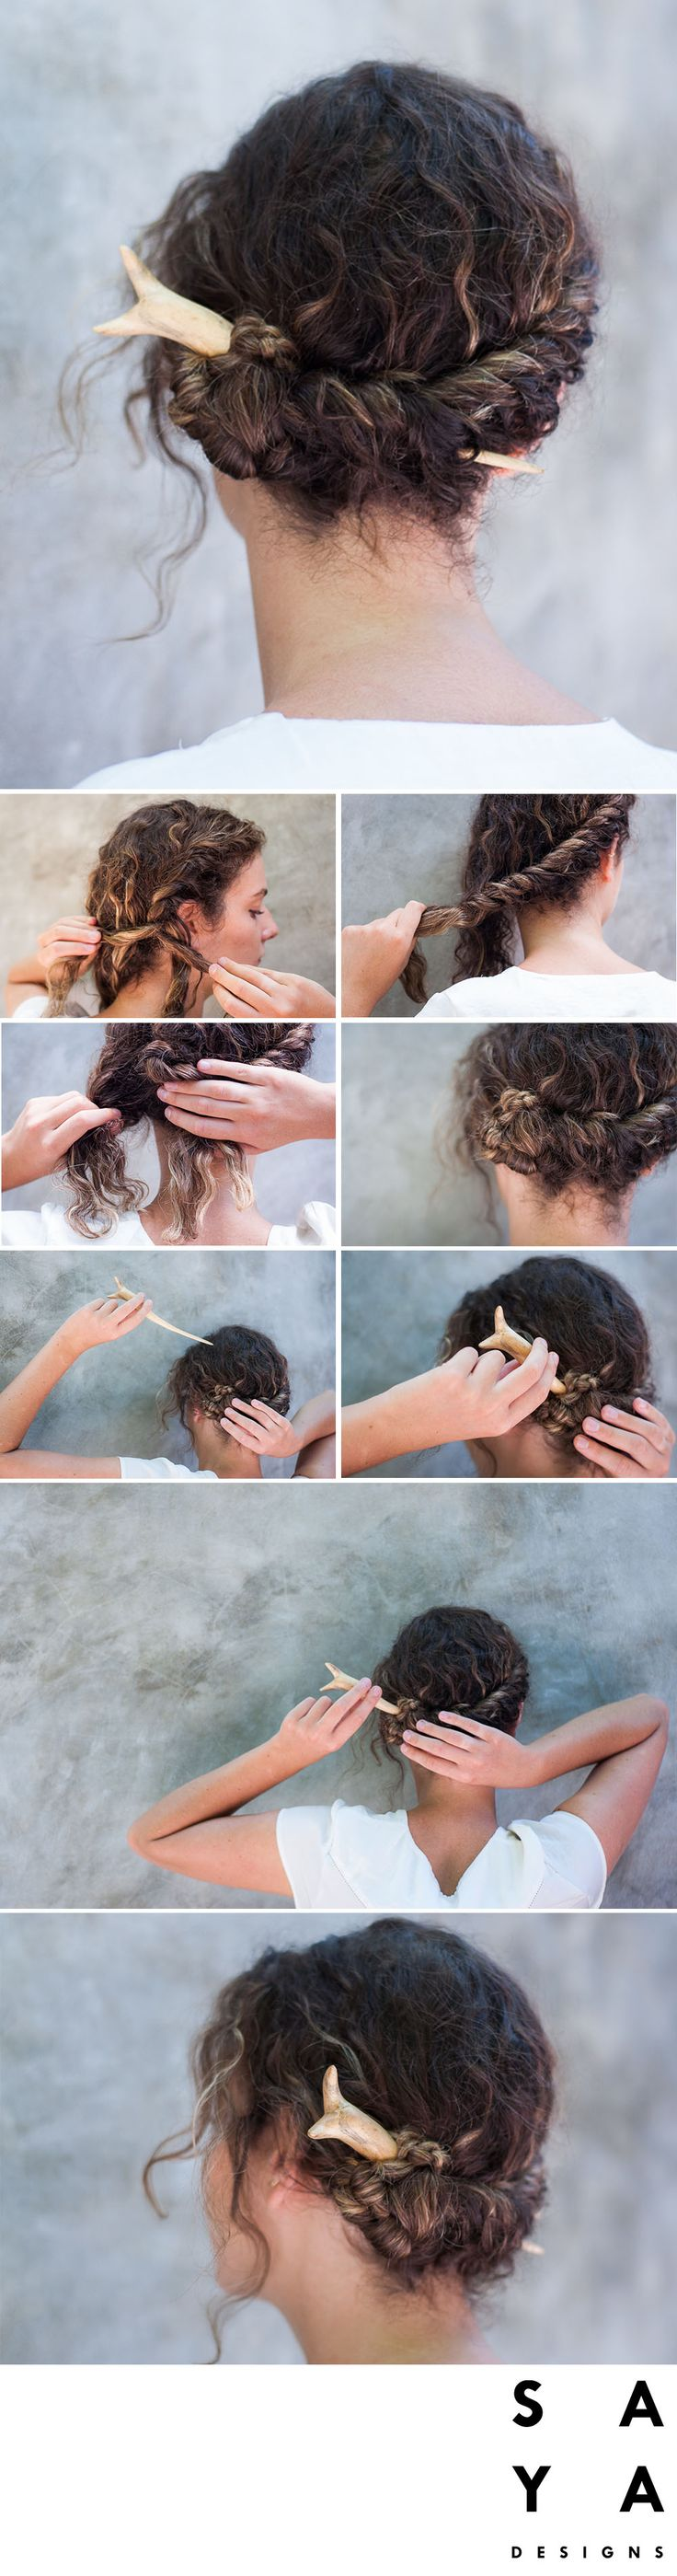 """How to do a """"French Twist"""".  Start by making a french braid from one side of head twisting round to the other side. Plait the remaining hair into a regular plait right down to the very bottom and hold firmly. Take the loose plait and twist it round itself into a low bun on the existing side. Take the hairpin to secure the bun to your head and weave it through multiple layers of hair until secure.  The hairpin used in this tutorial is the """"Soka Bud"""" from our new collection now LIVE on…"""